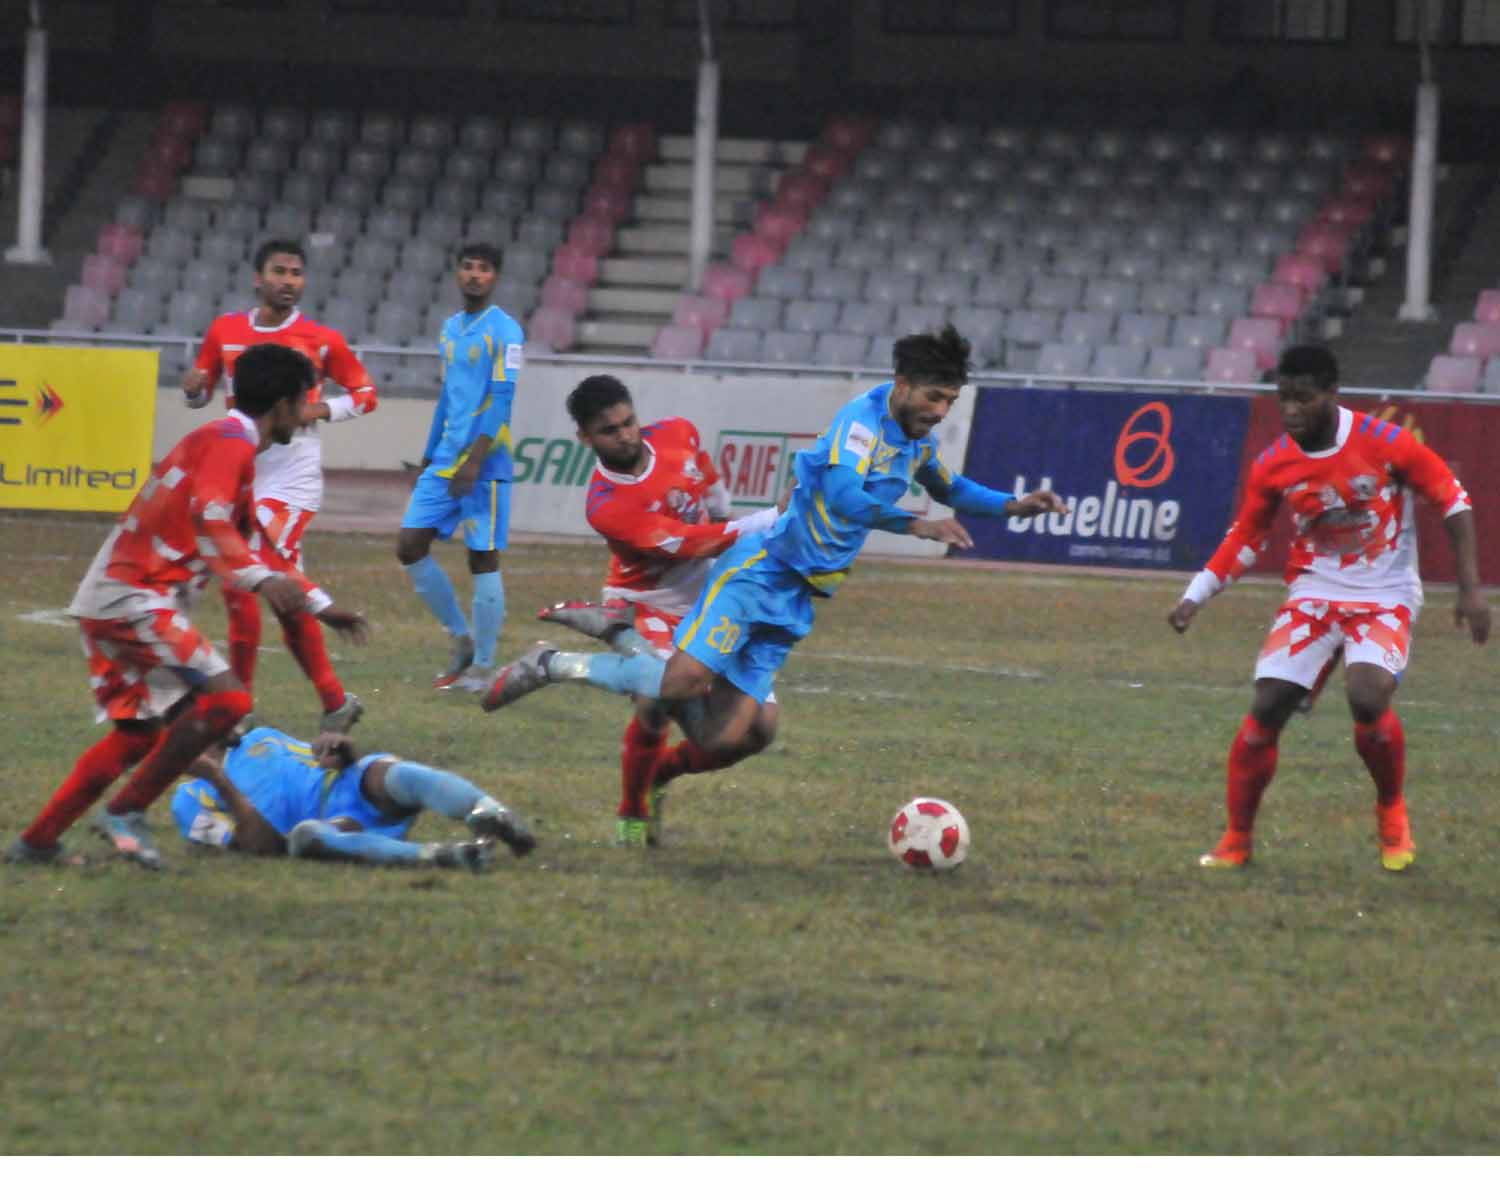 An action from the match of the Saif Power Battery Bangladesh Premier League Football between Dhaka Abahani Limited and Sheikh Russel Krira Chakra at the Bangabandhu National Stadium on Saturday. Dhaka Abahani Limited won the match 1-0.